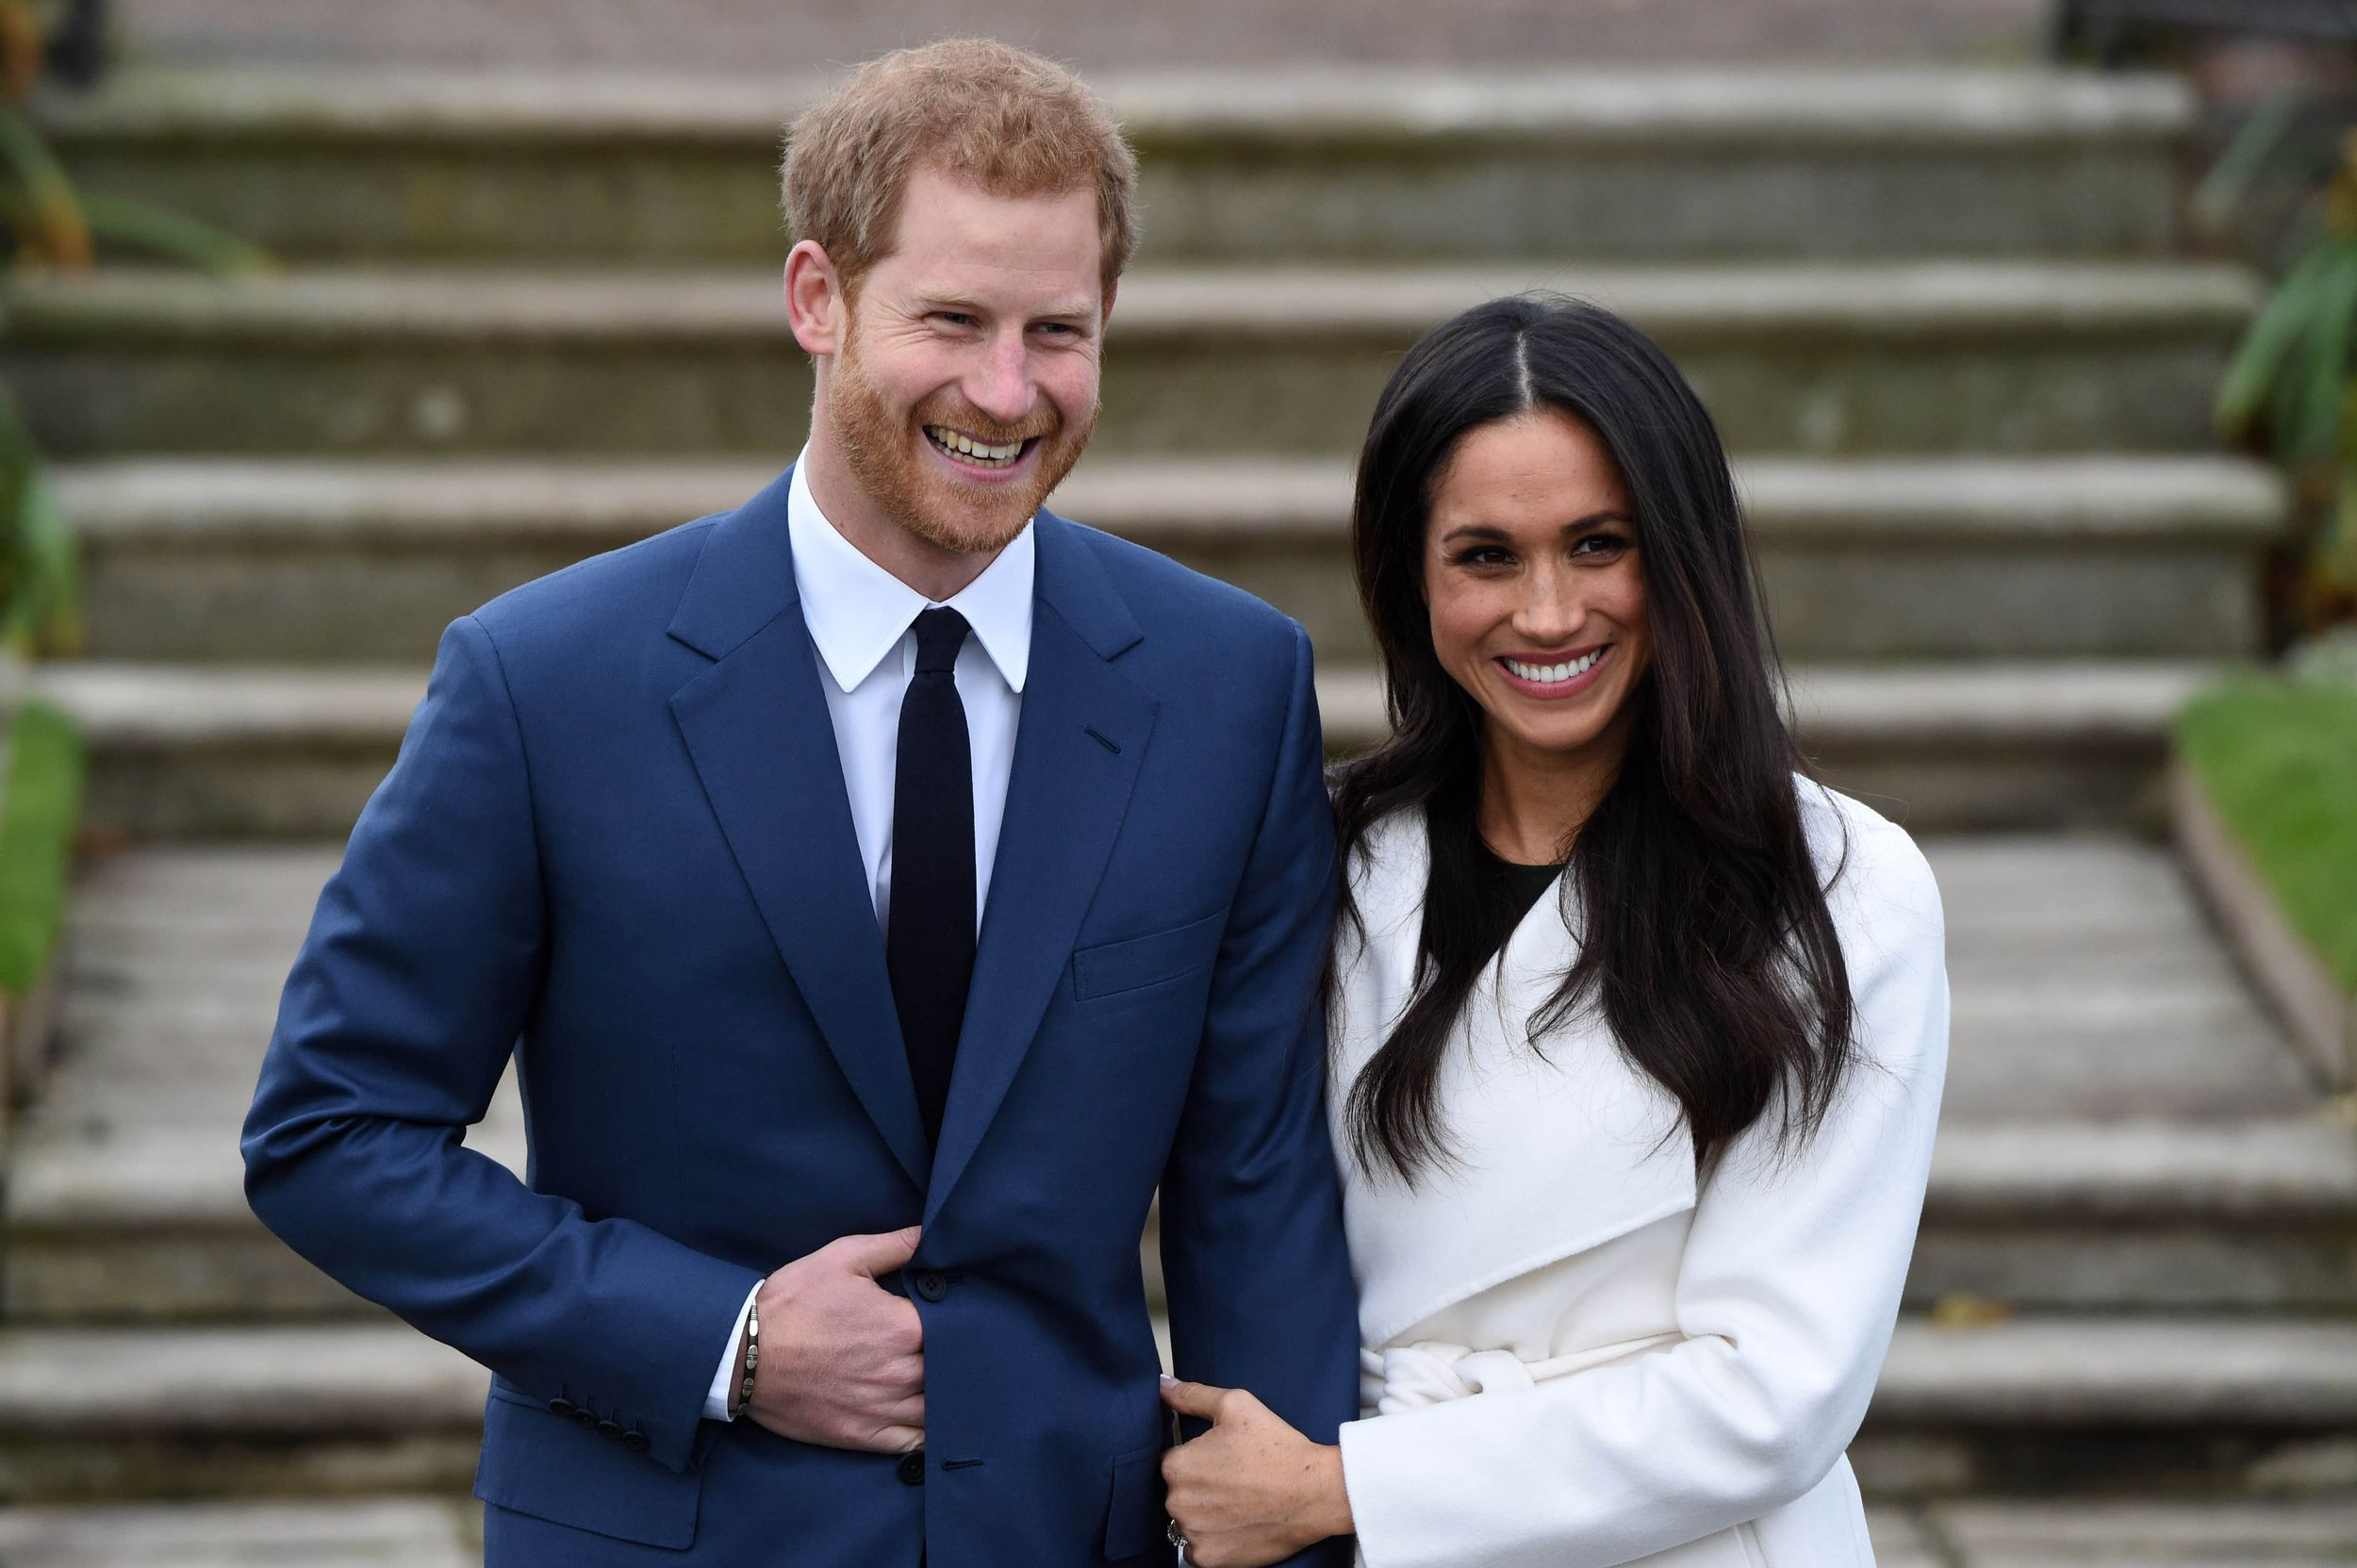 Prince Harry Wedding Date.William And Kate S Pda May Be Inspired By Harry And Meghan